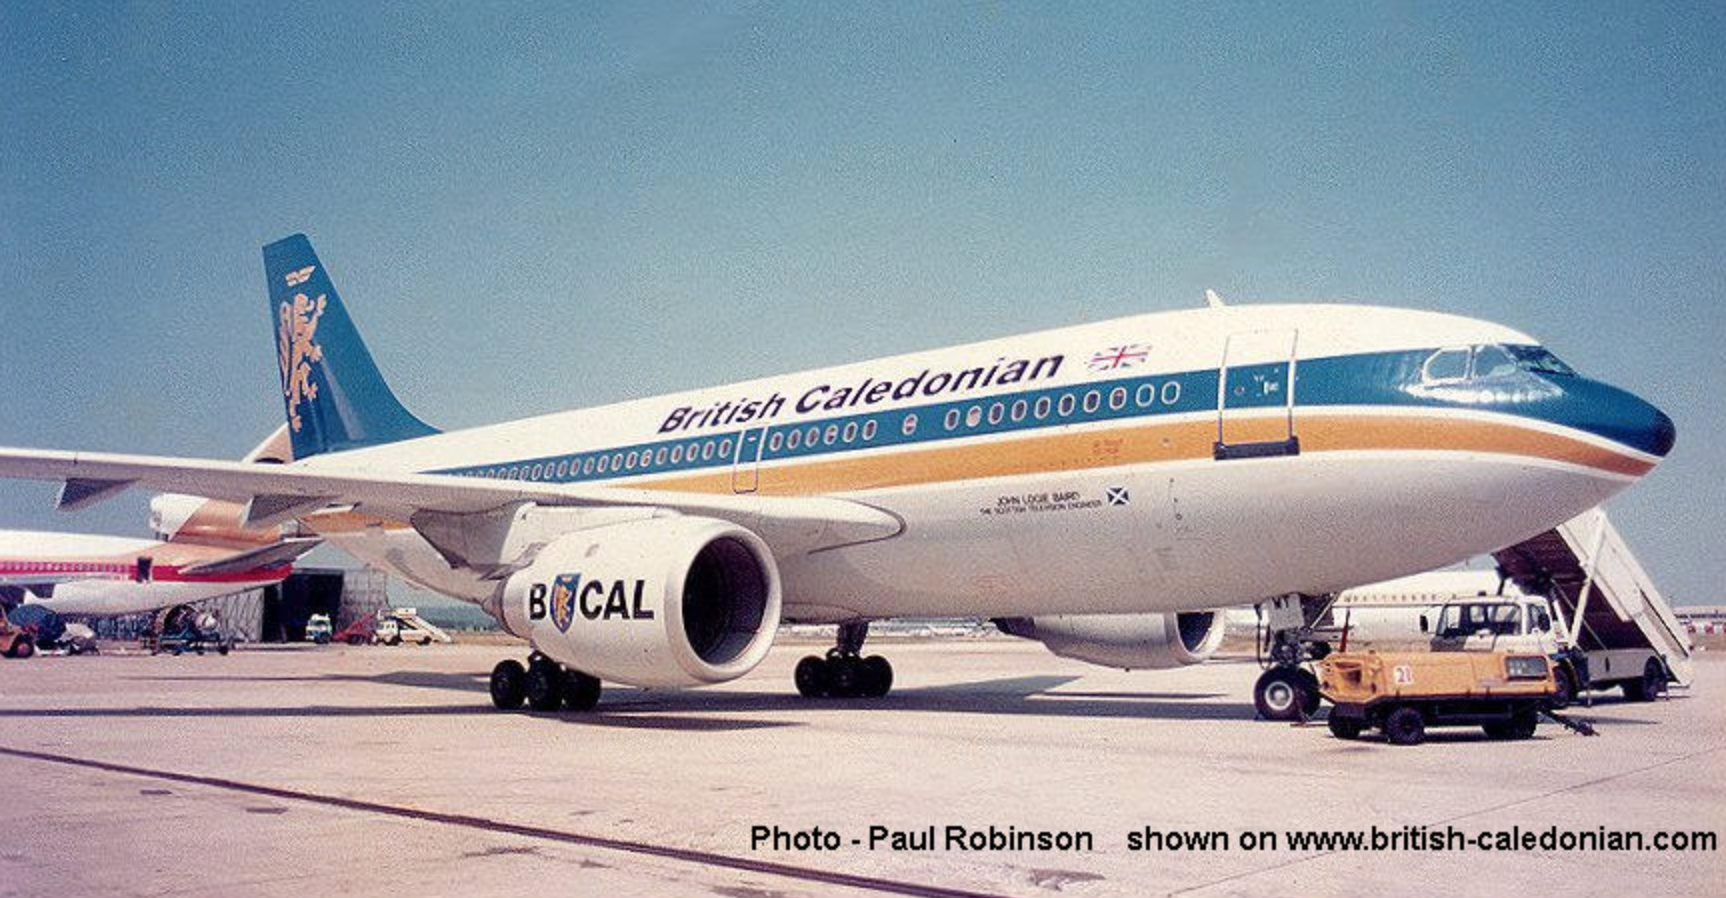 British Caledoniam Airways